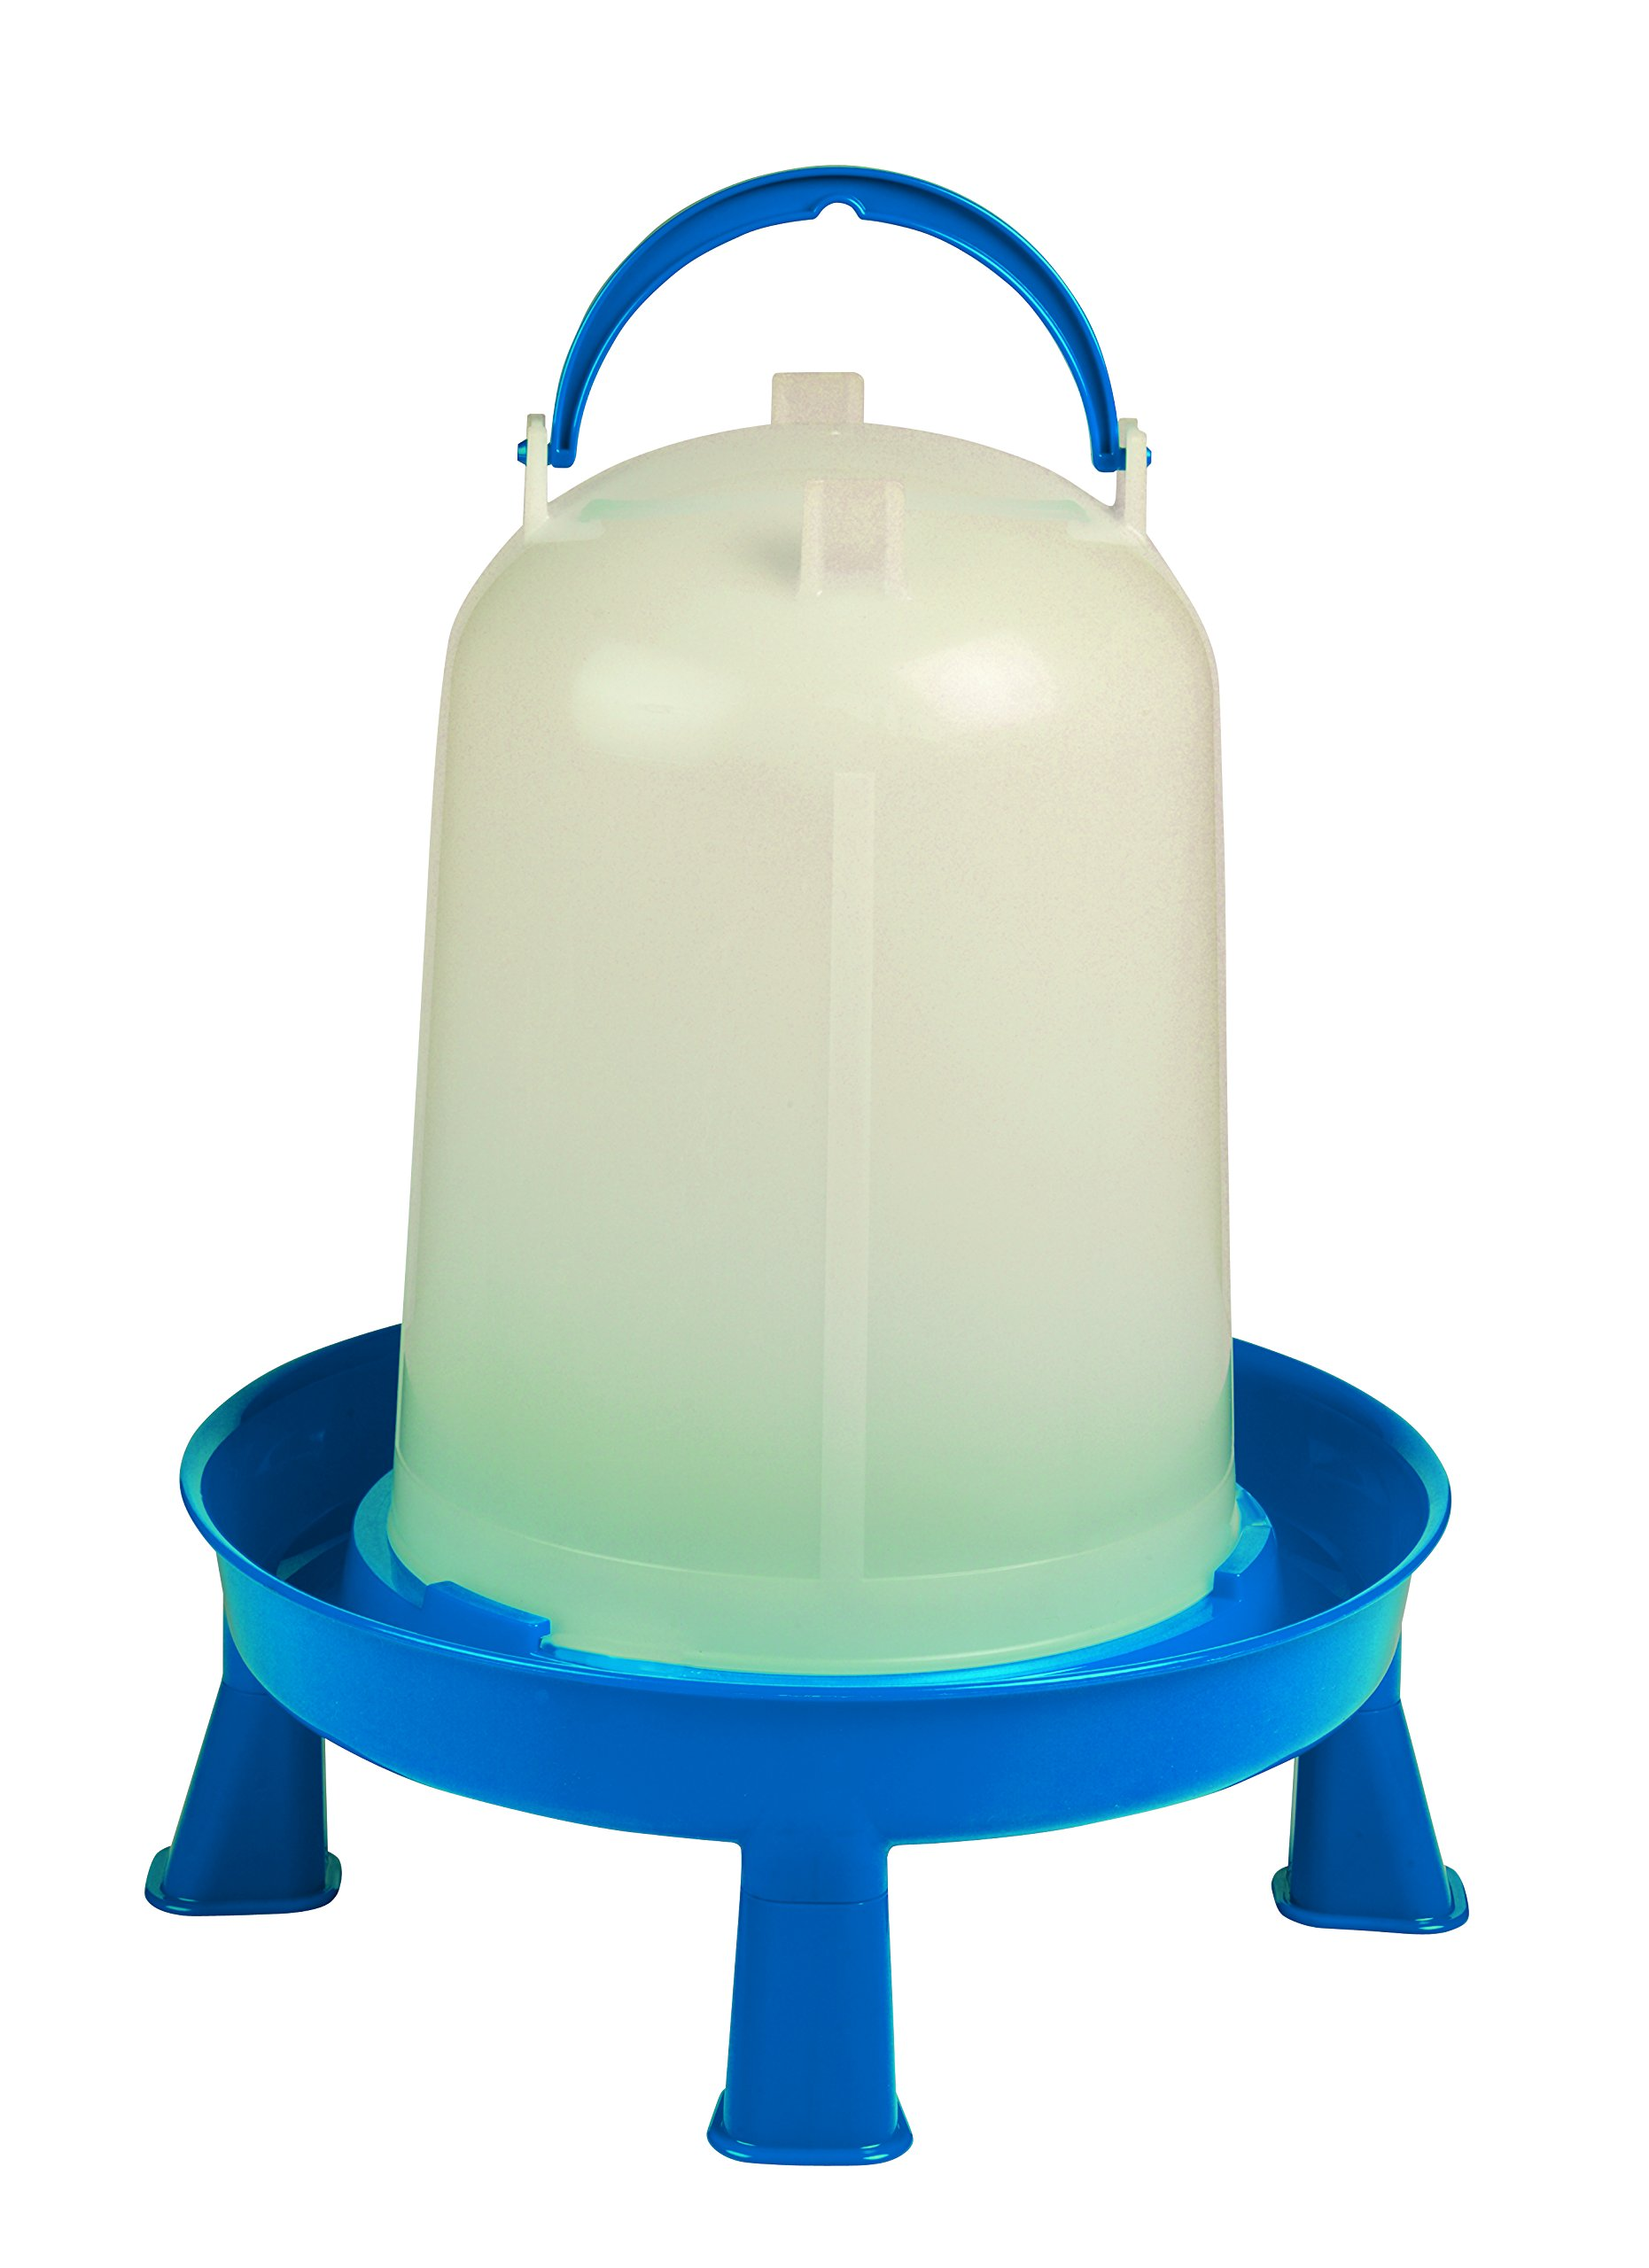 Double-Tuf DT9878 2.5 Gal Poultry Waterer with Legs by Double-Tuf